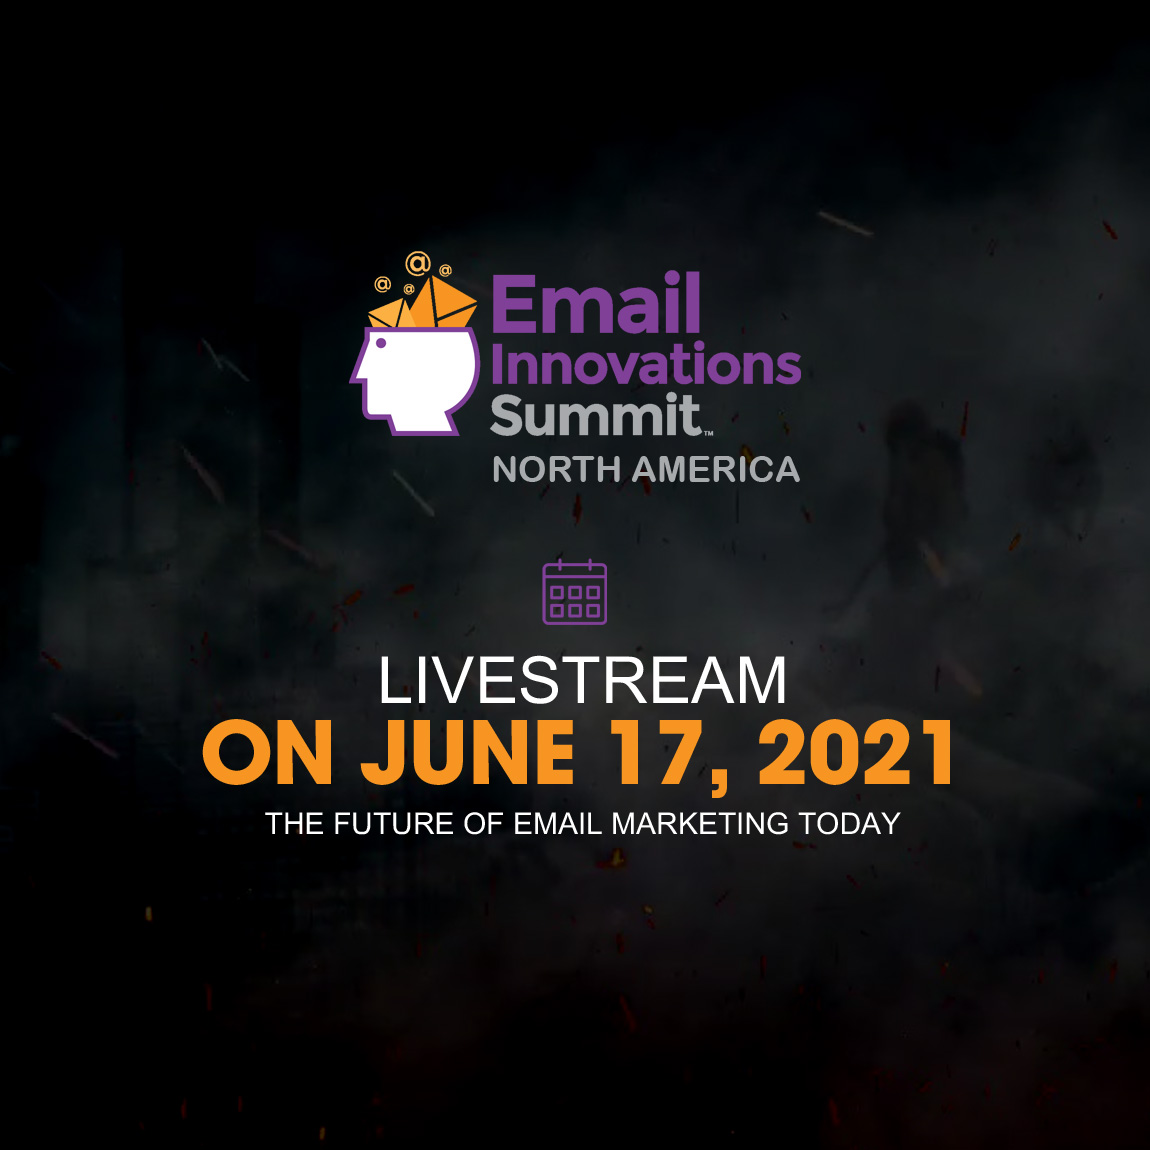 Email Innovations Summit: North America